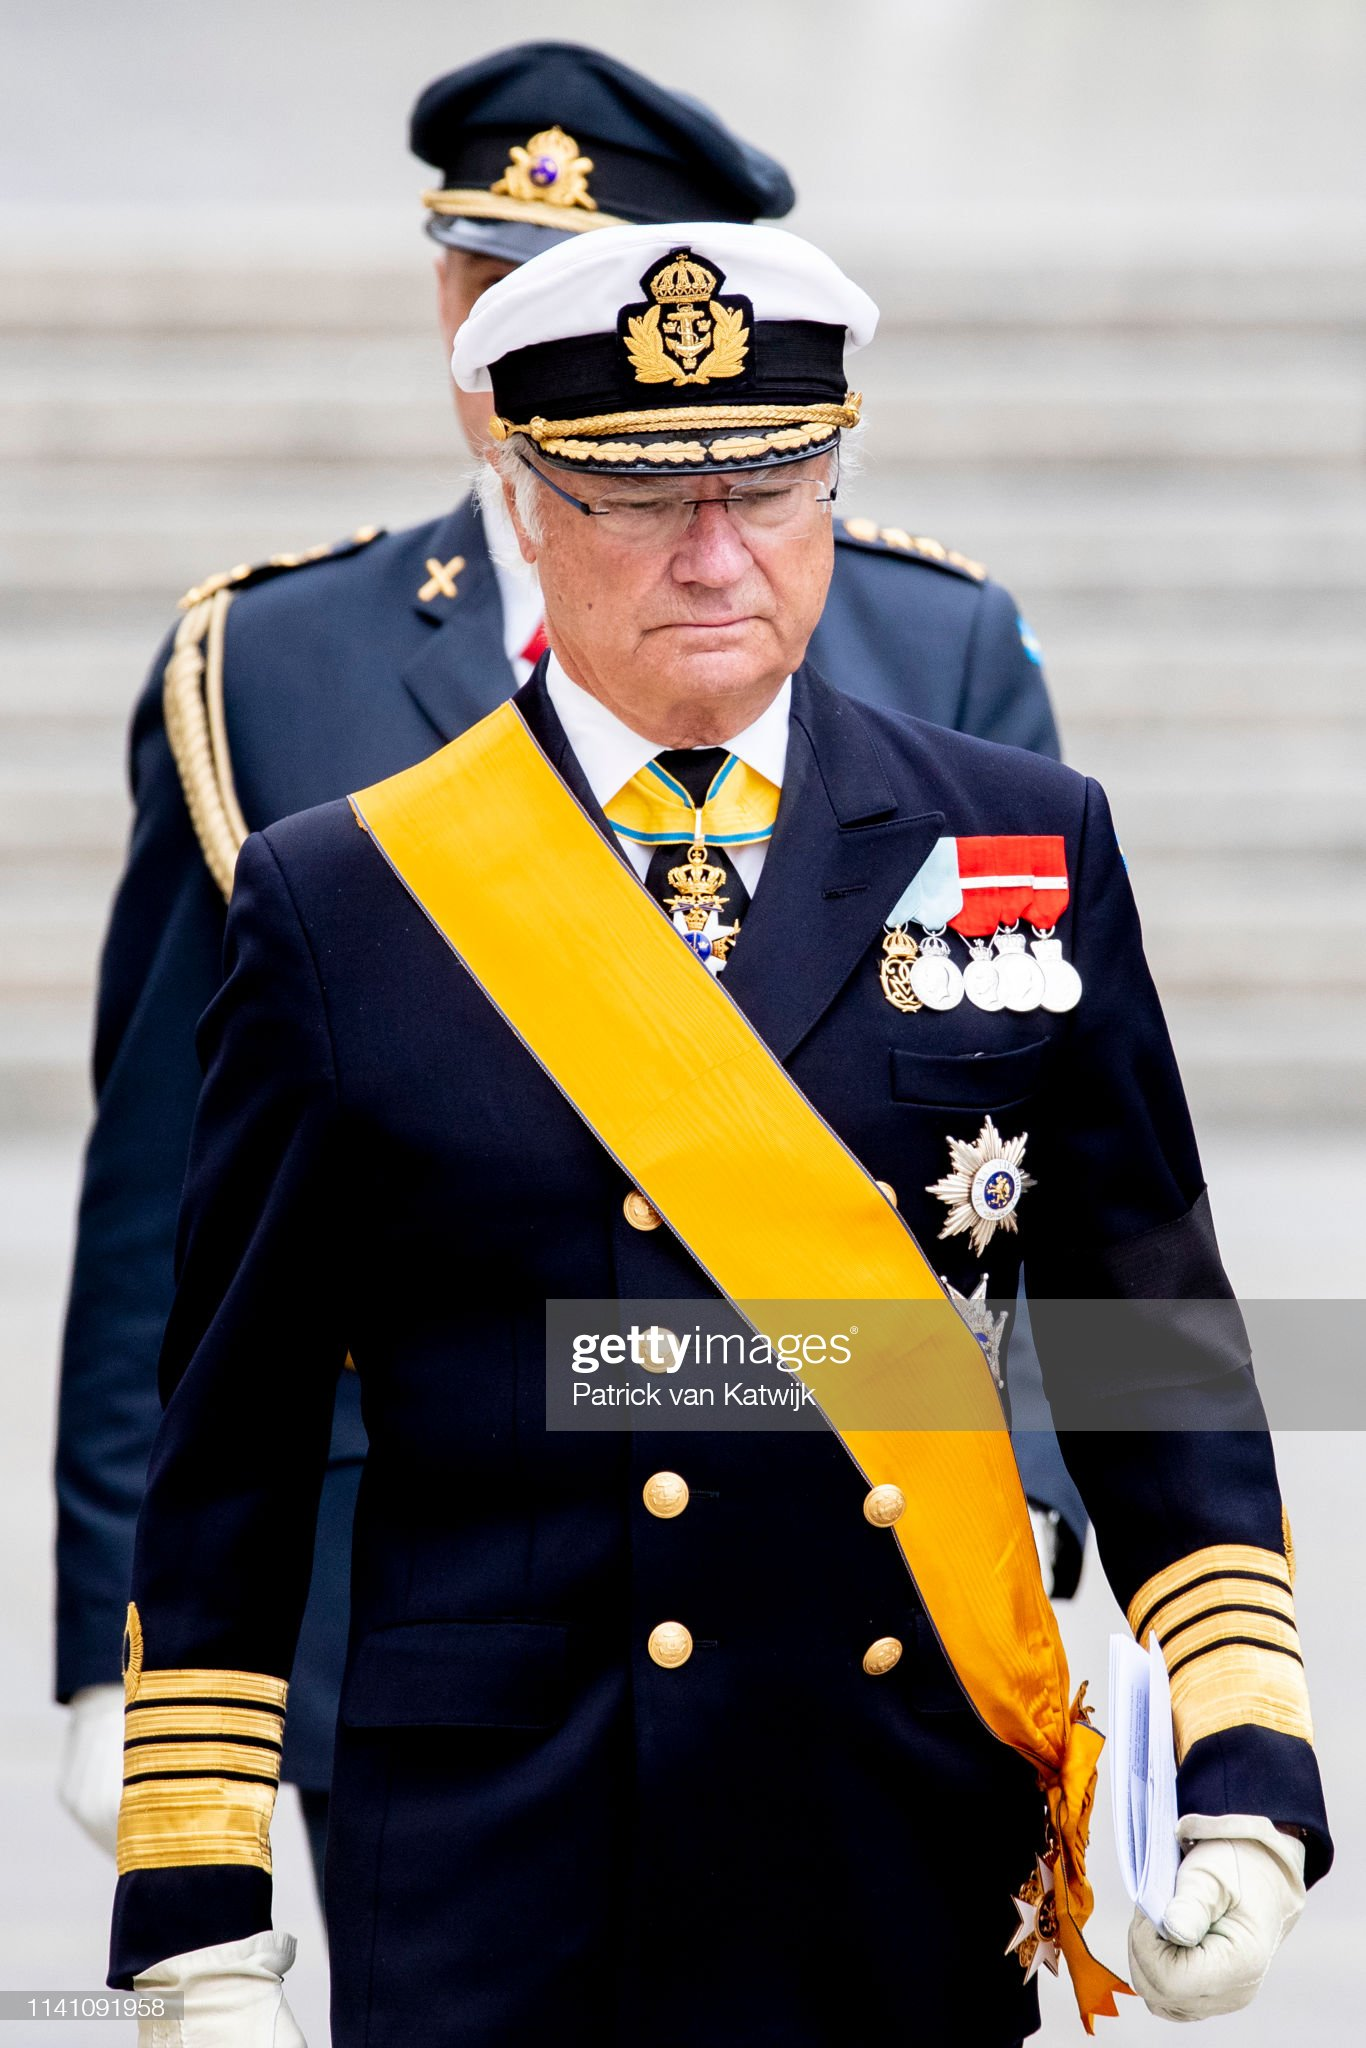 Похороны Великого Герцога Жана https://media.gettyimages.com/photos/king-carl-gustaf-of-sweden-attends-the-funeral-of-grand-duke-jean-on-picture-id1141091958?s=2048x2048